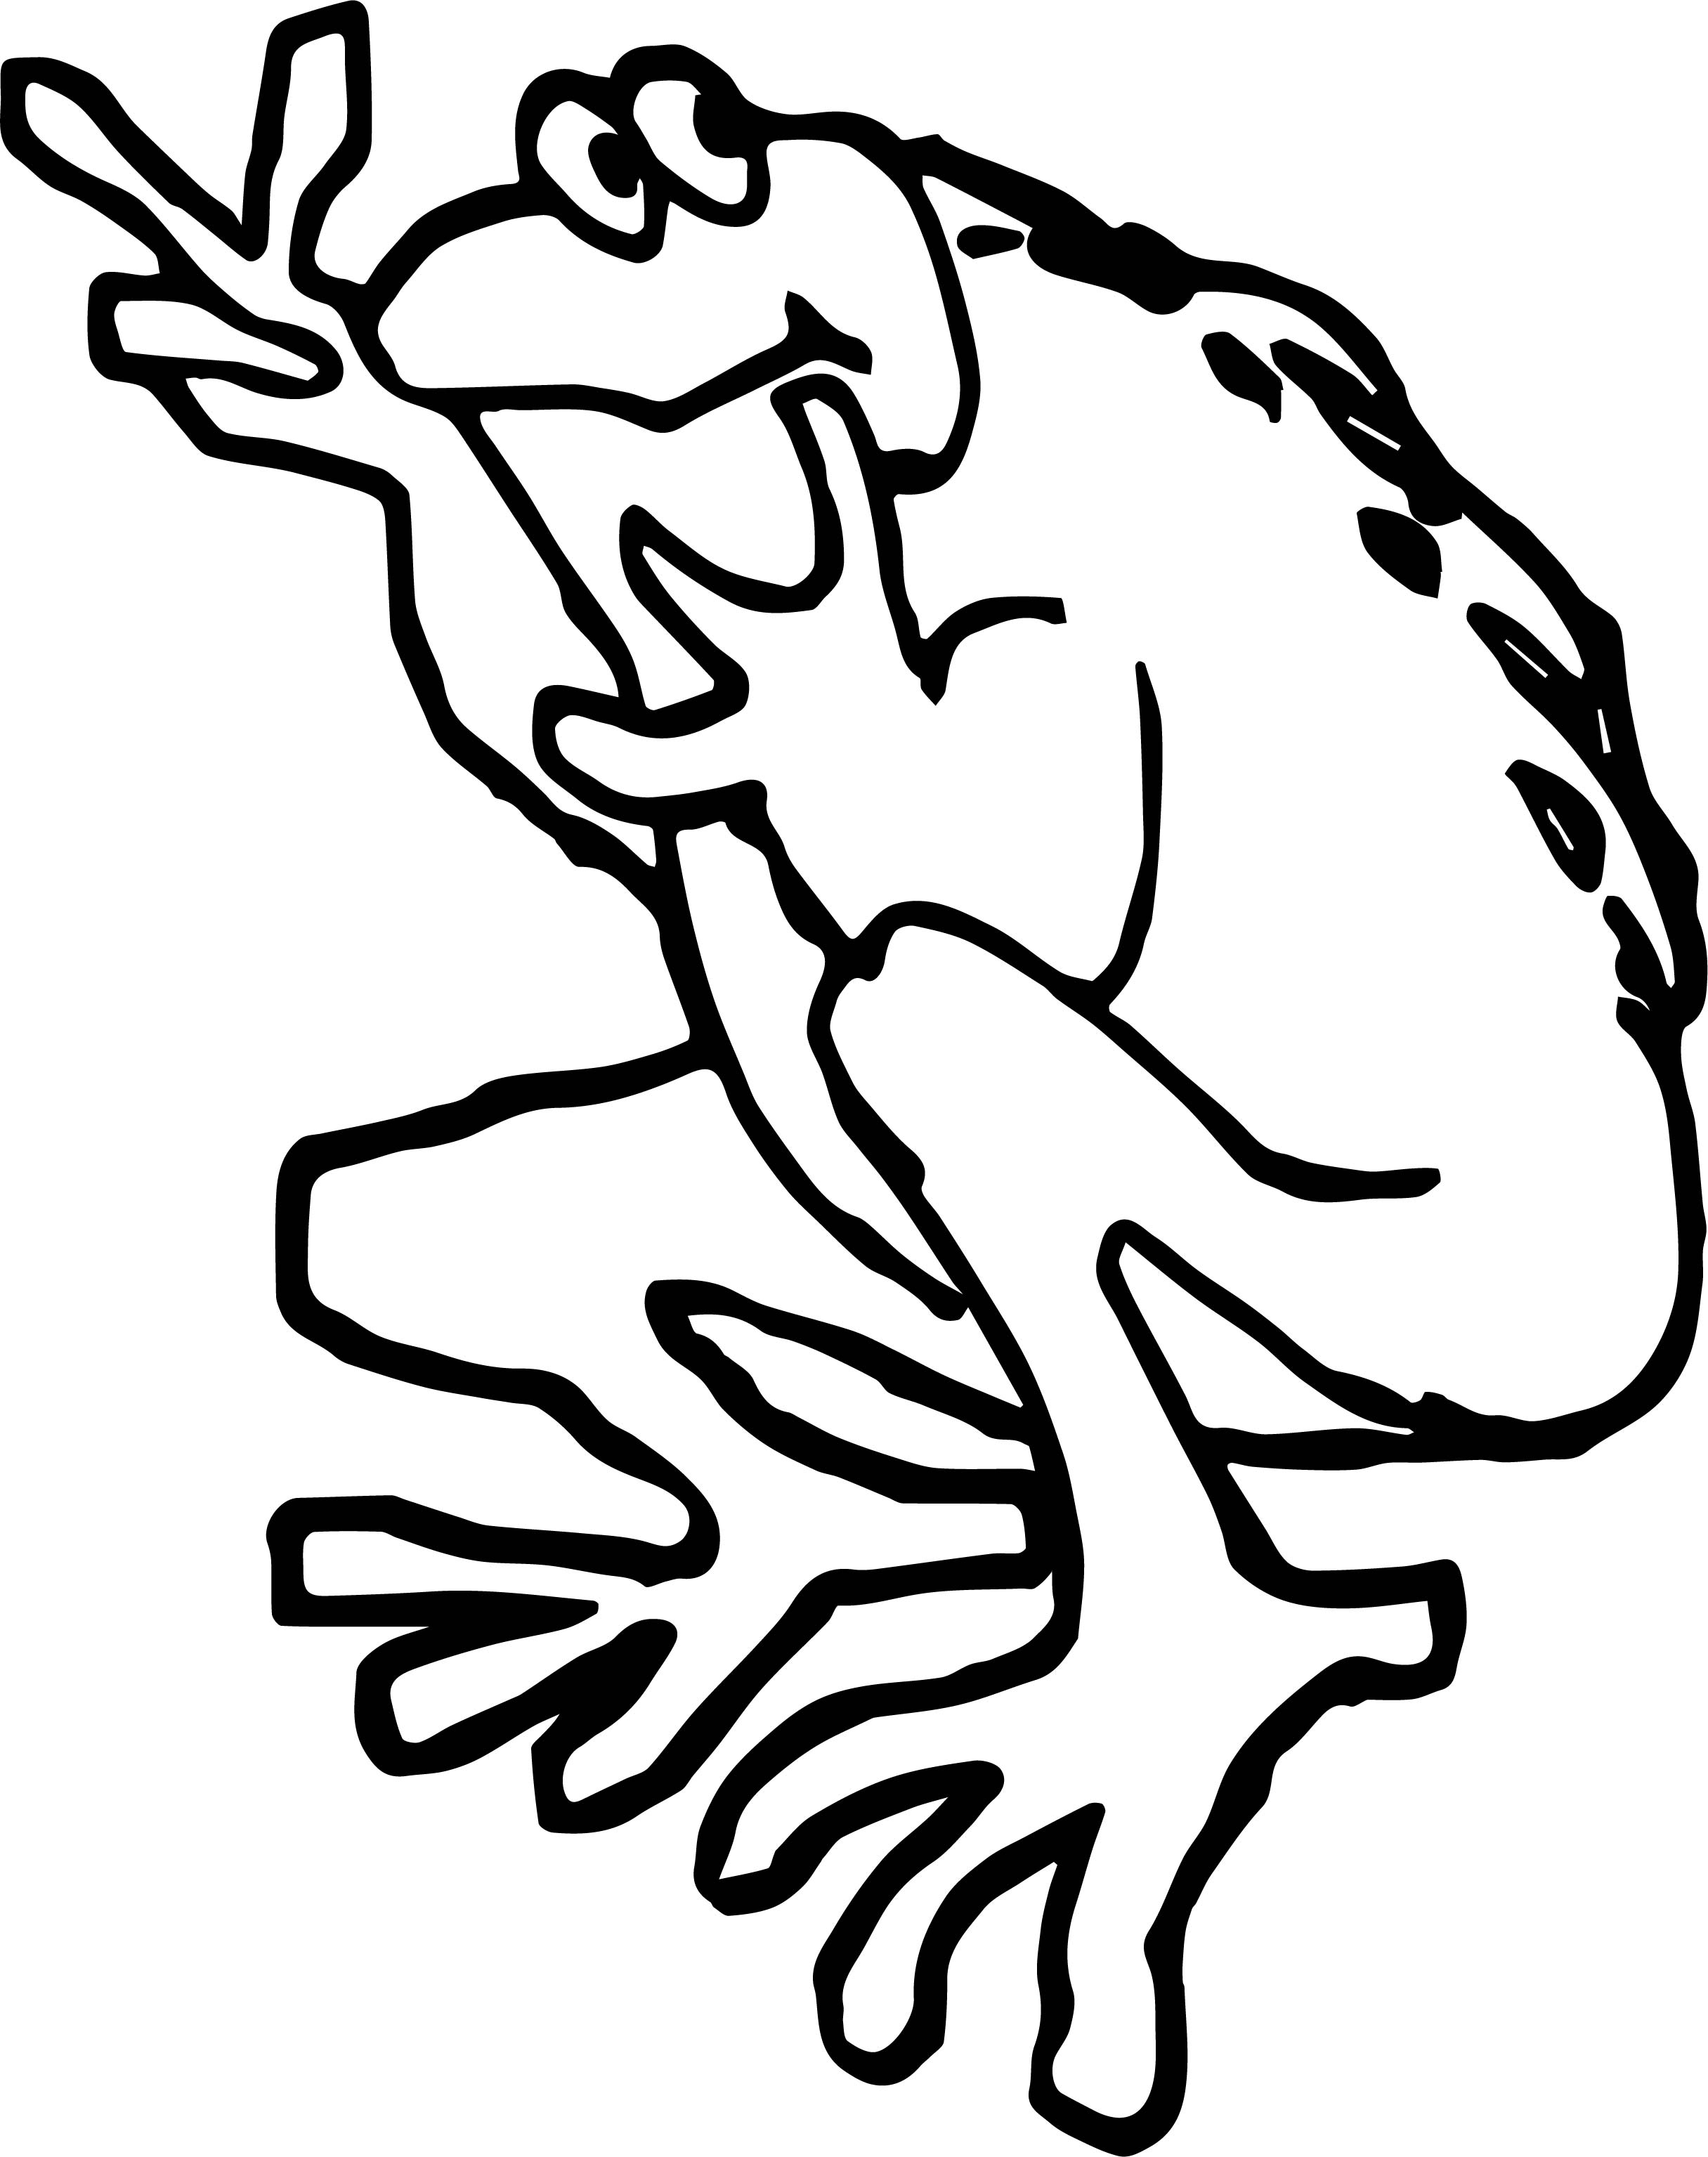 Frog Peace Coloring Page